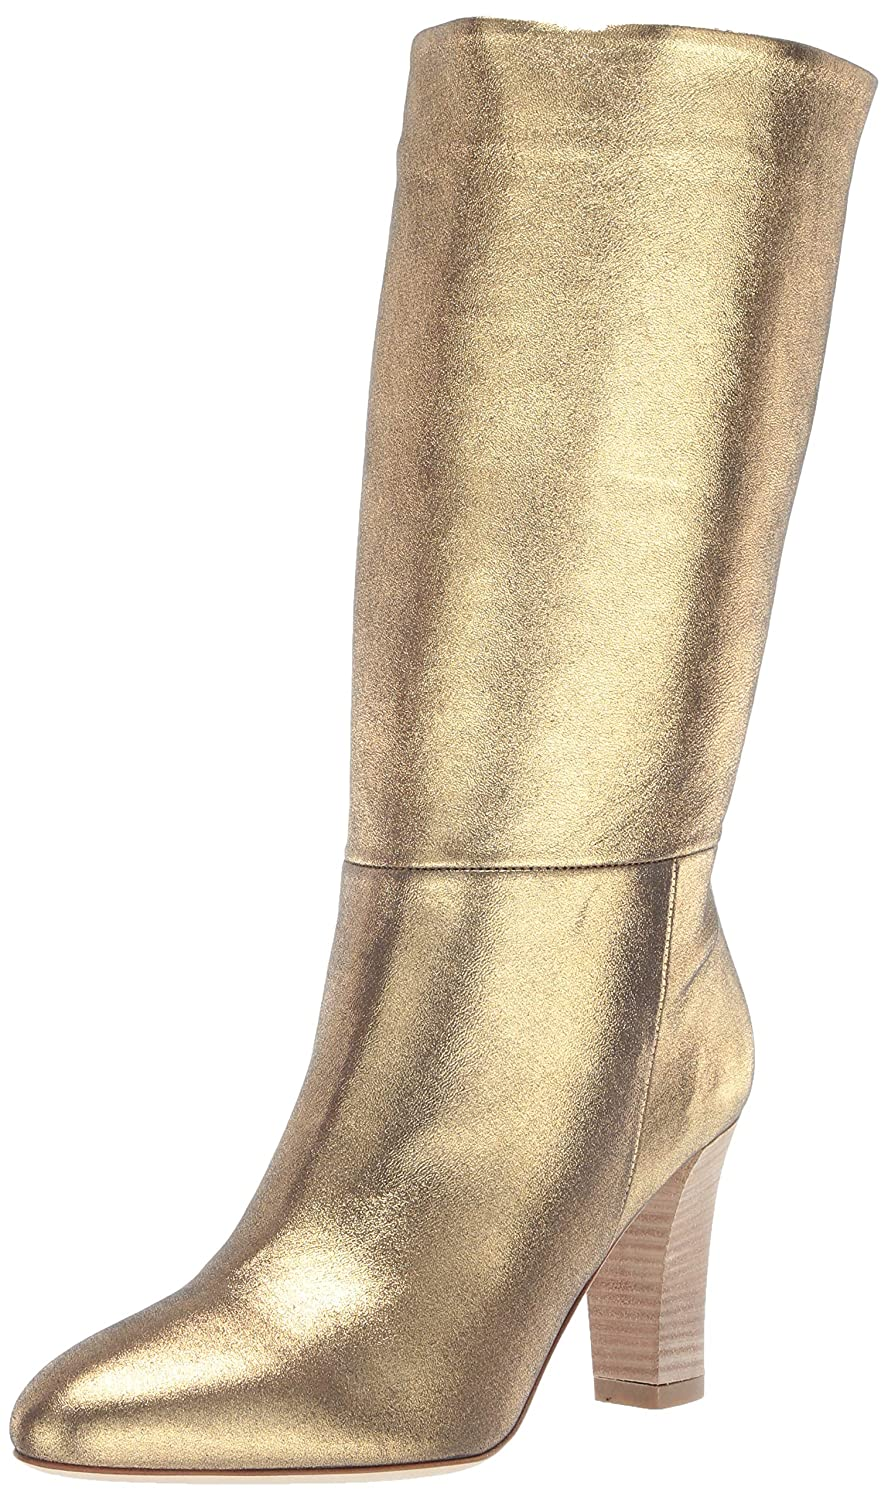 Karat Nappa Leather SJP by Sarah Jessica Parker Womens Reign Almond Toe Mid Calf Boot